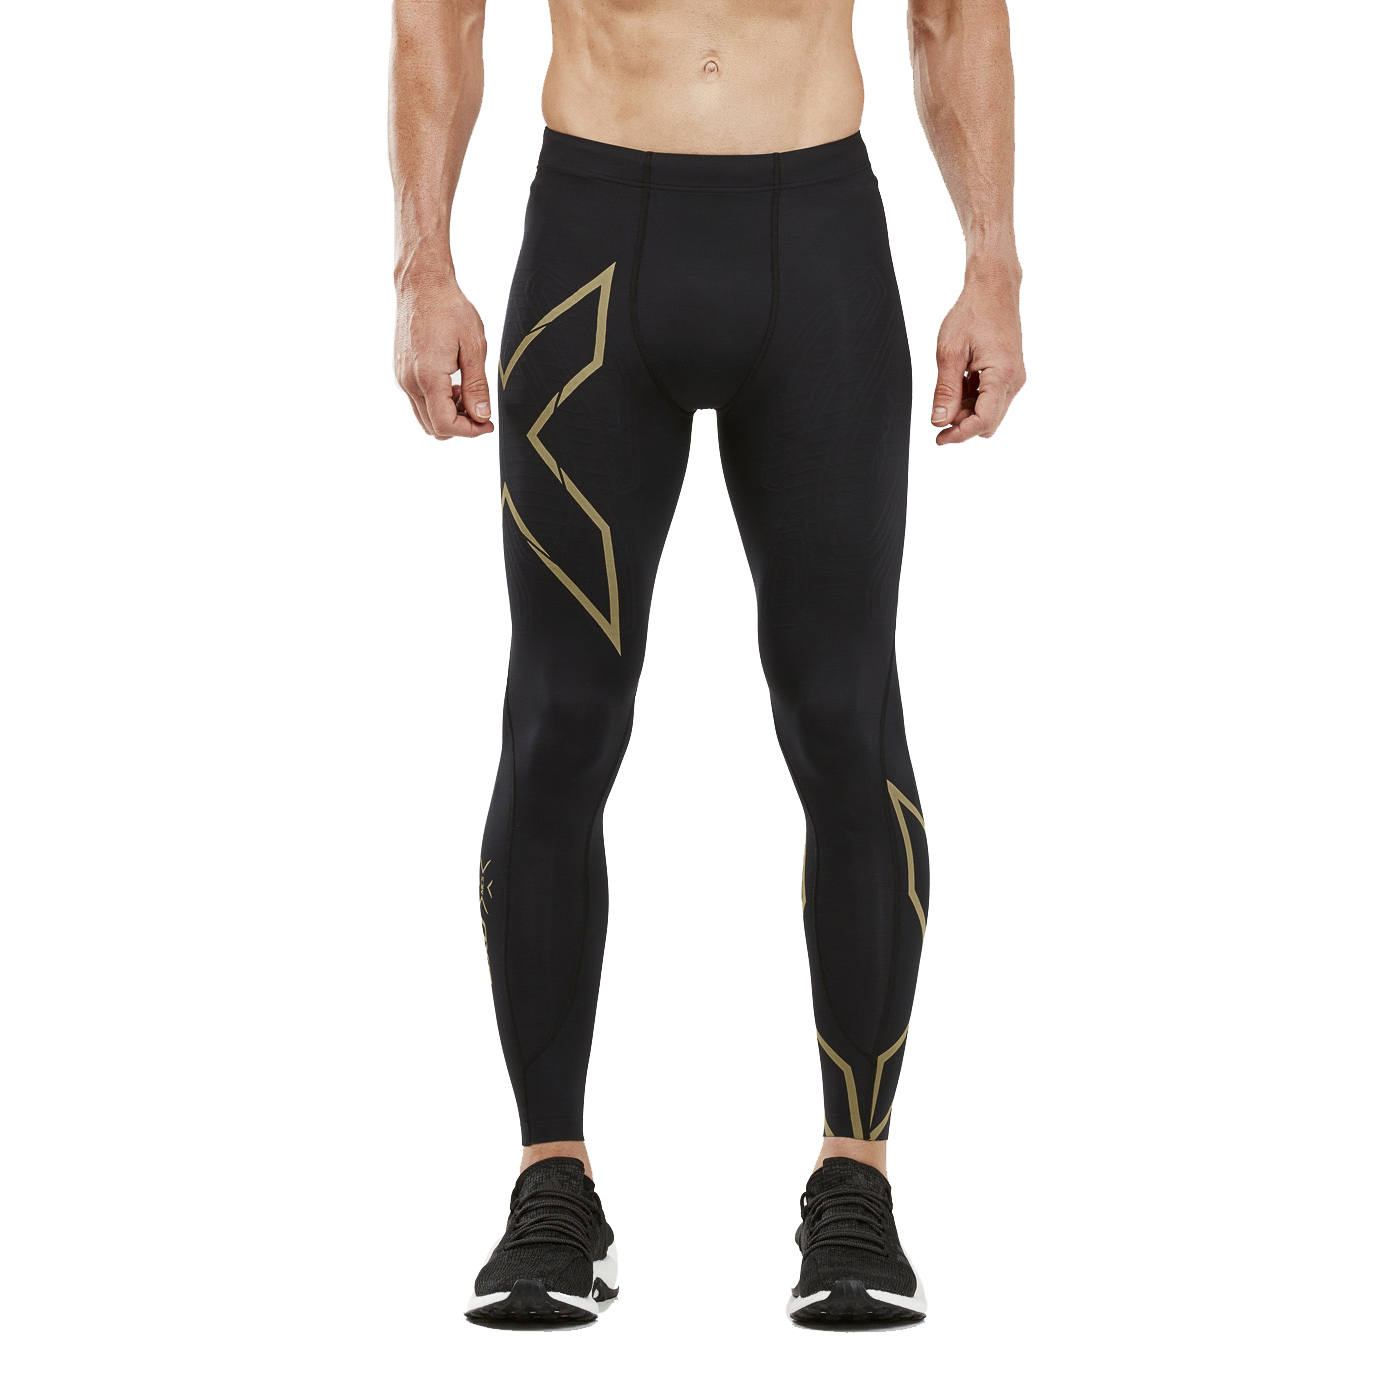 dd46cf04e282f 2XU Men's MCS Run Compression Tights - Black Gold Reflective | Mens ...